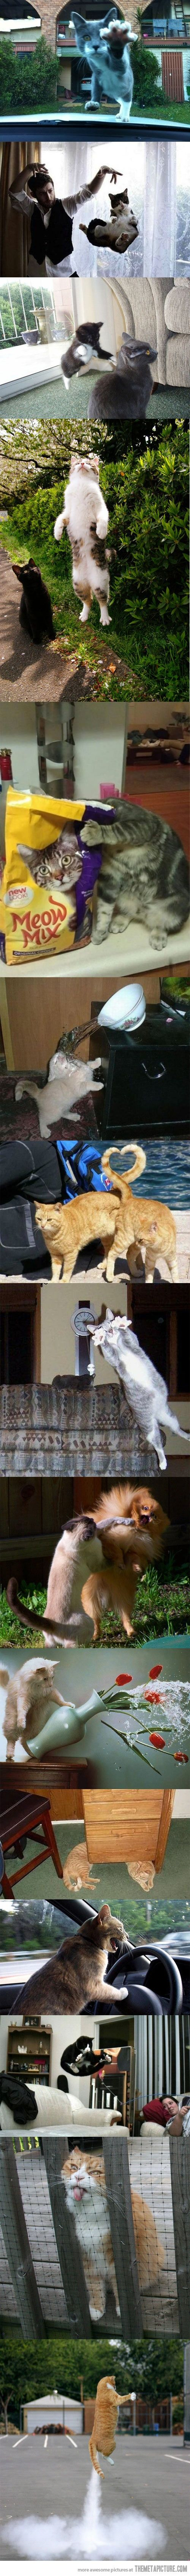 15 Perfectly Timed Cat Photos - Abusement Park Nation